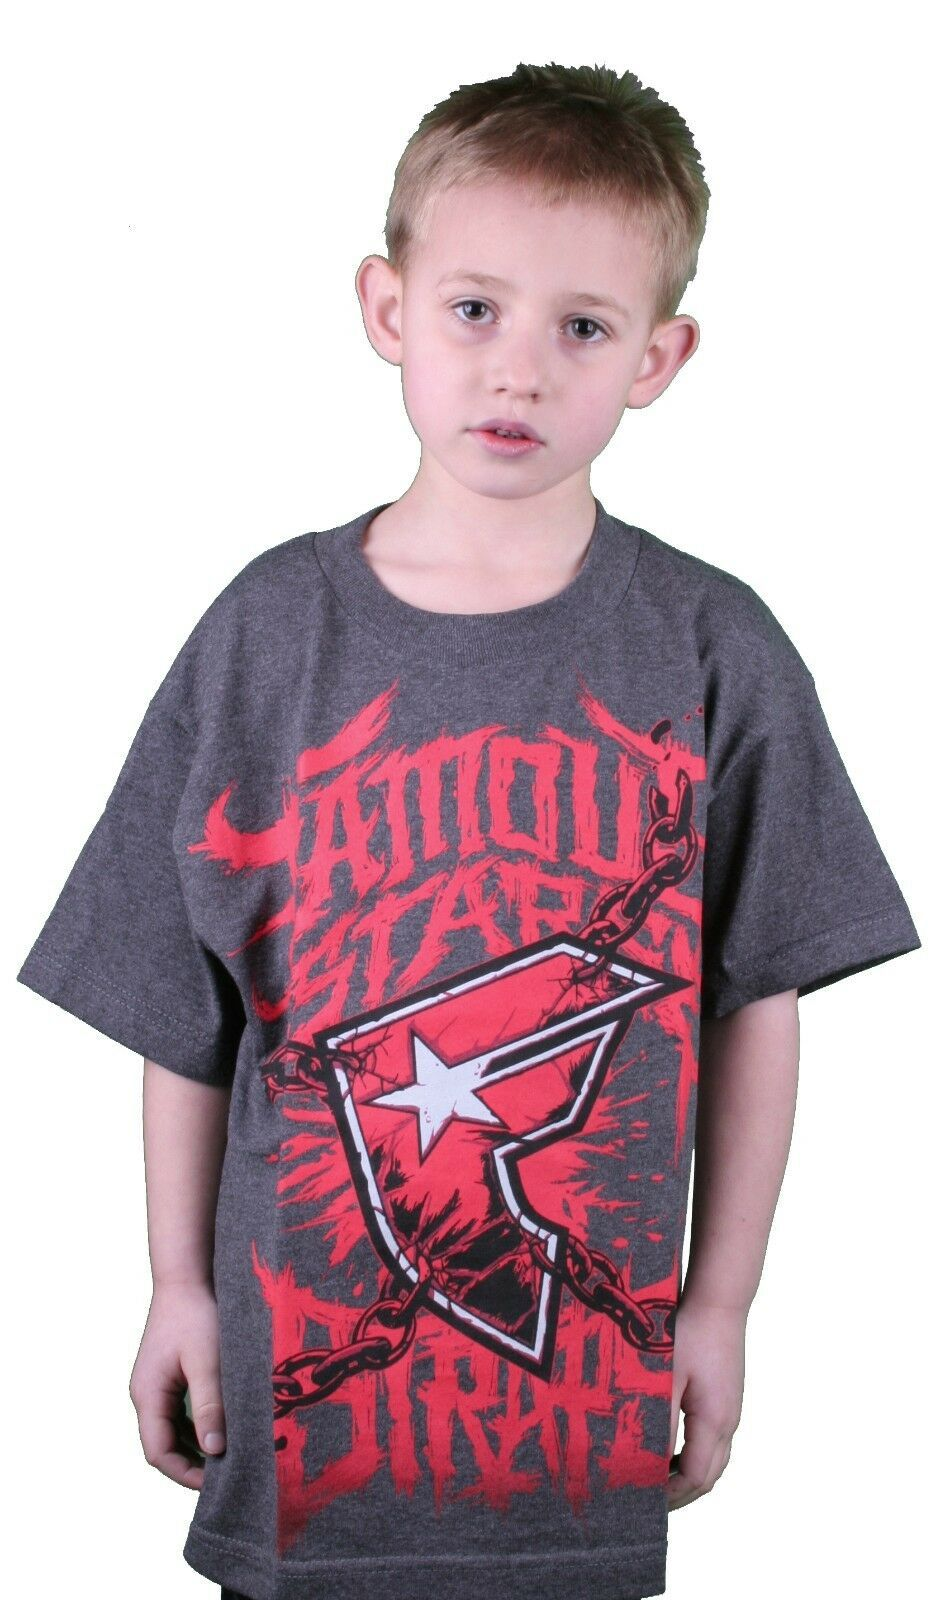 Famous Stars & Straps Charcoal Heather Red War Stories Youth Kids Boys T-Shirt